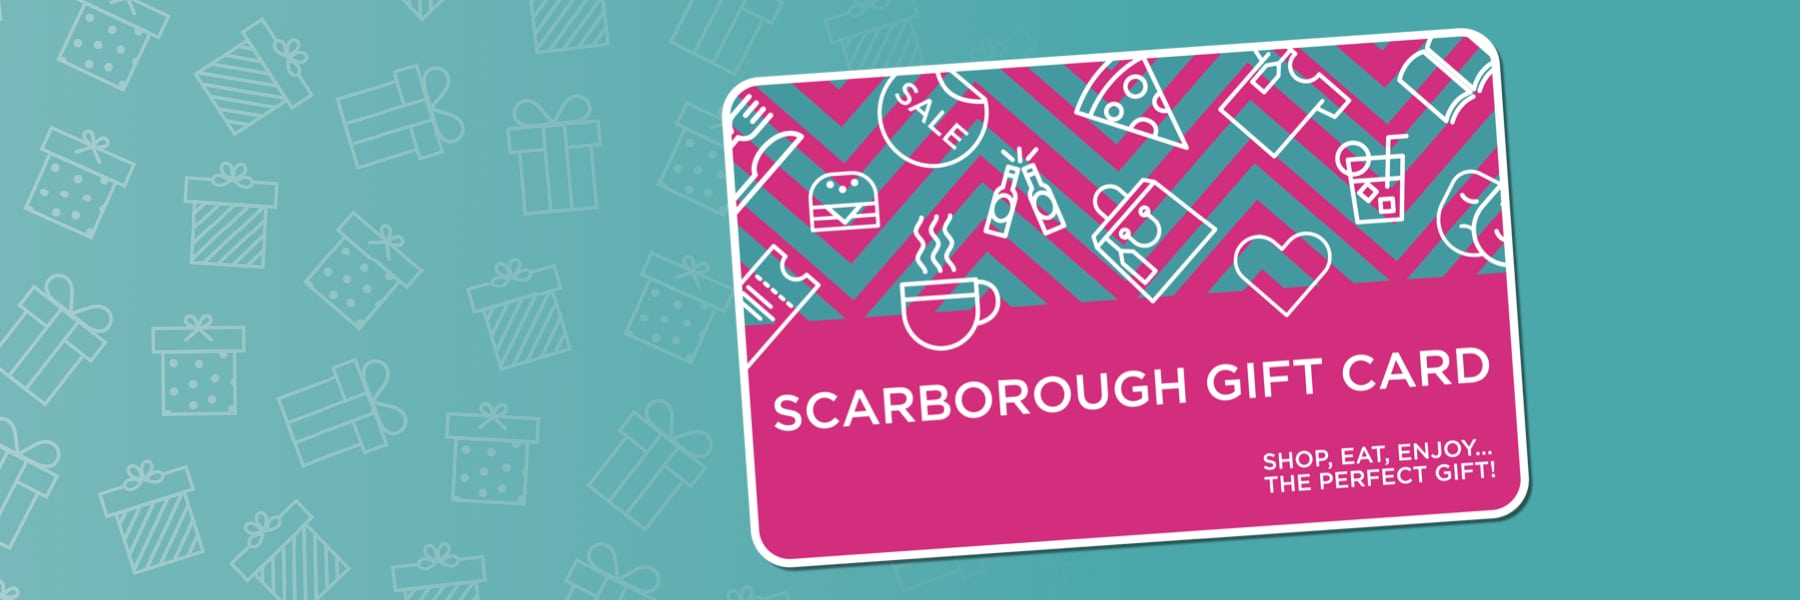 Scarborough Gift Card